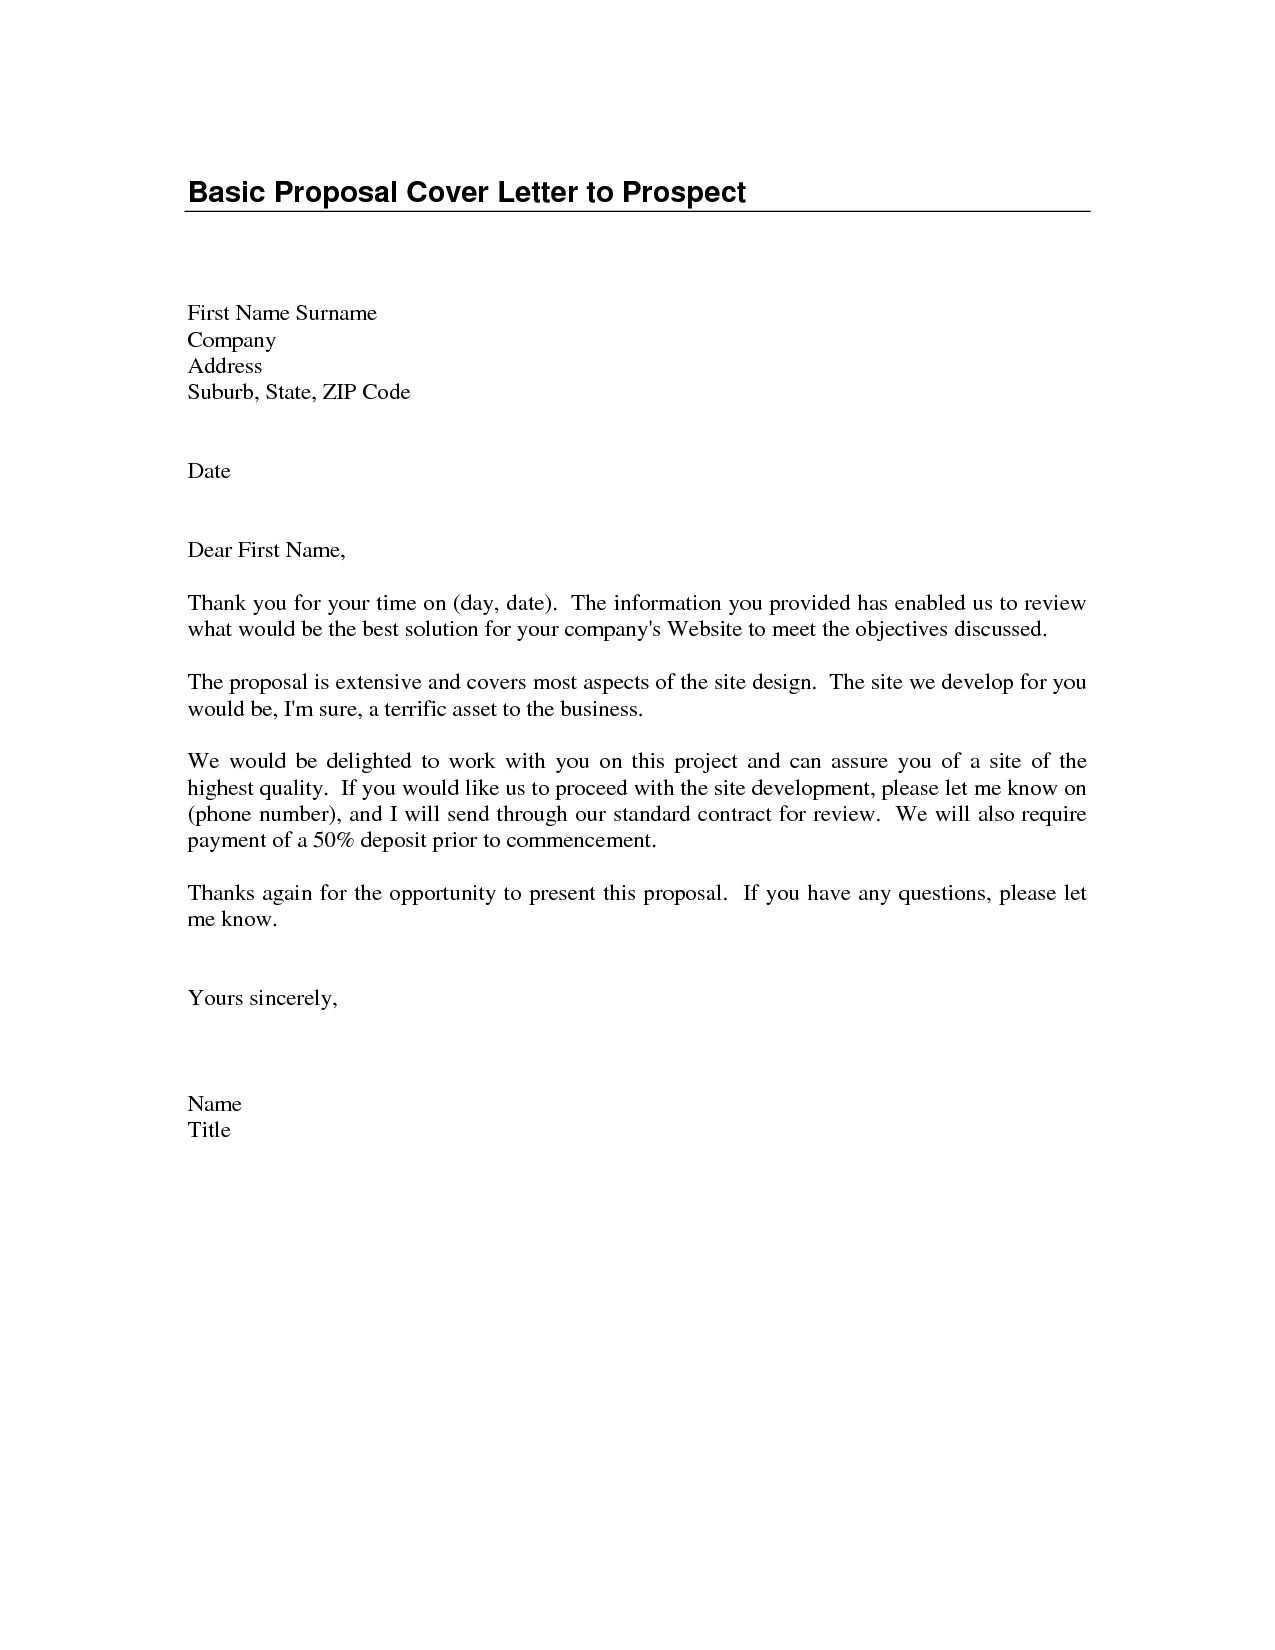 23 Simple Covering Letter Example Basic Cover Sample Letters Free Basicsimple